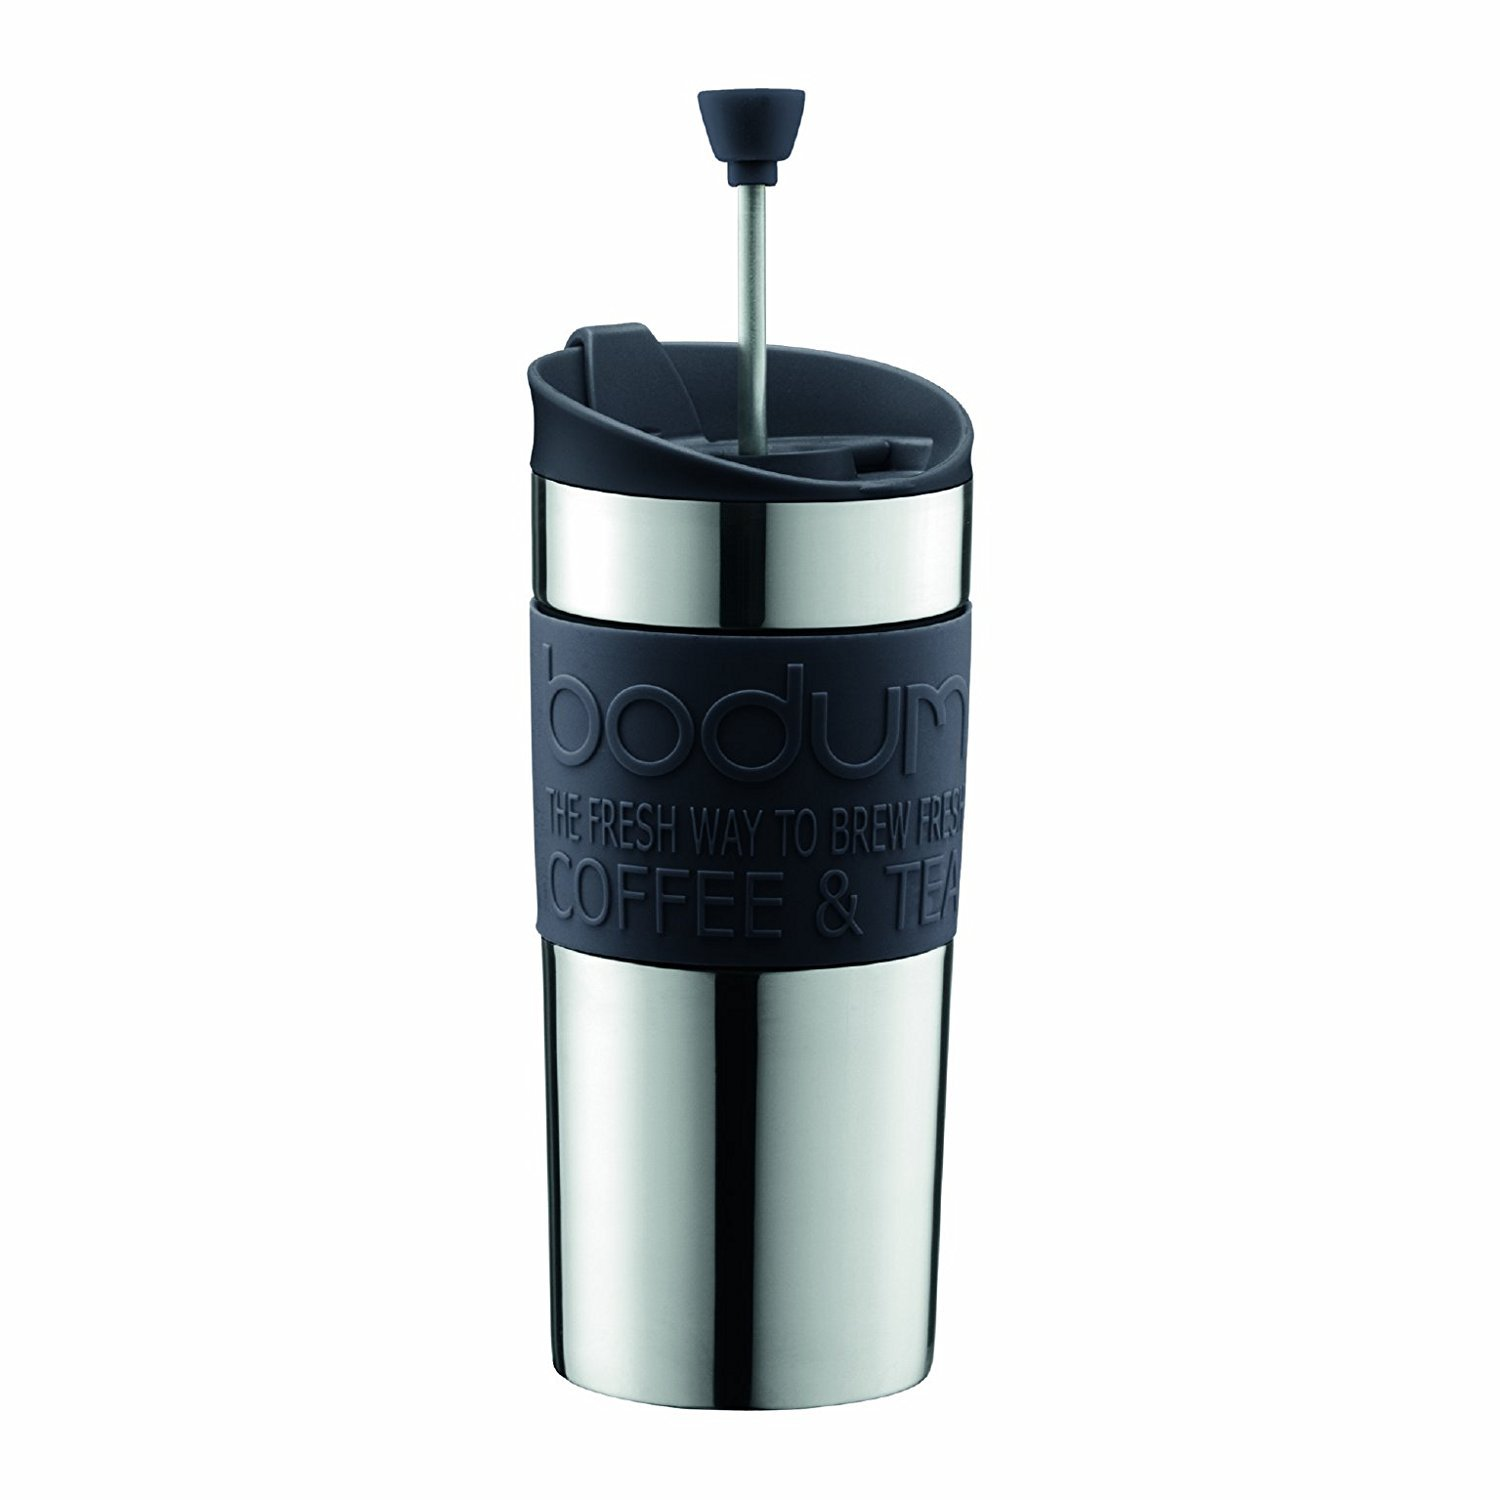 Bodum - Travel Mug - Vacuum Insulated with Interchangeable French Press Lid - Stainless Steel - 0.35l - Black Grip and Lid